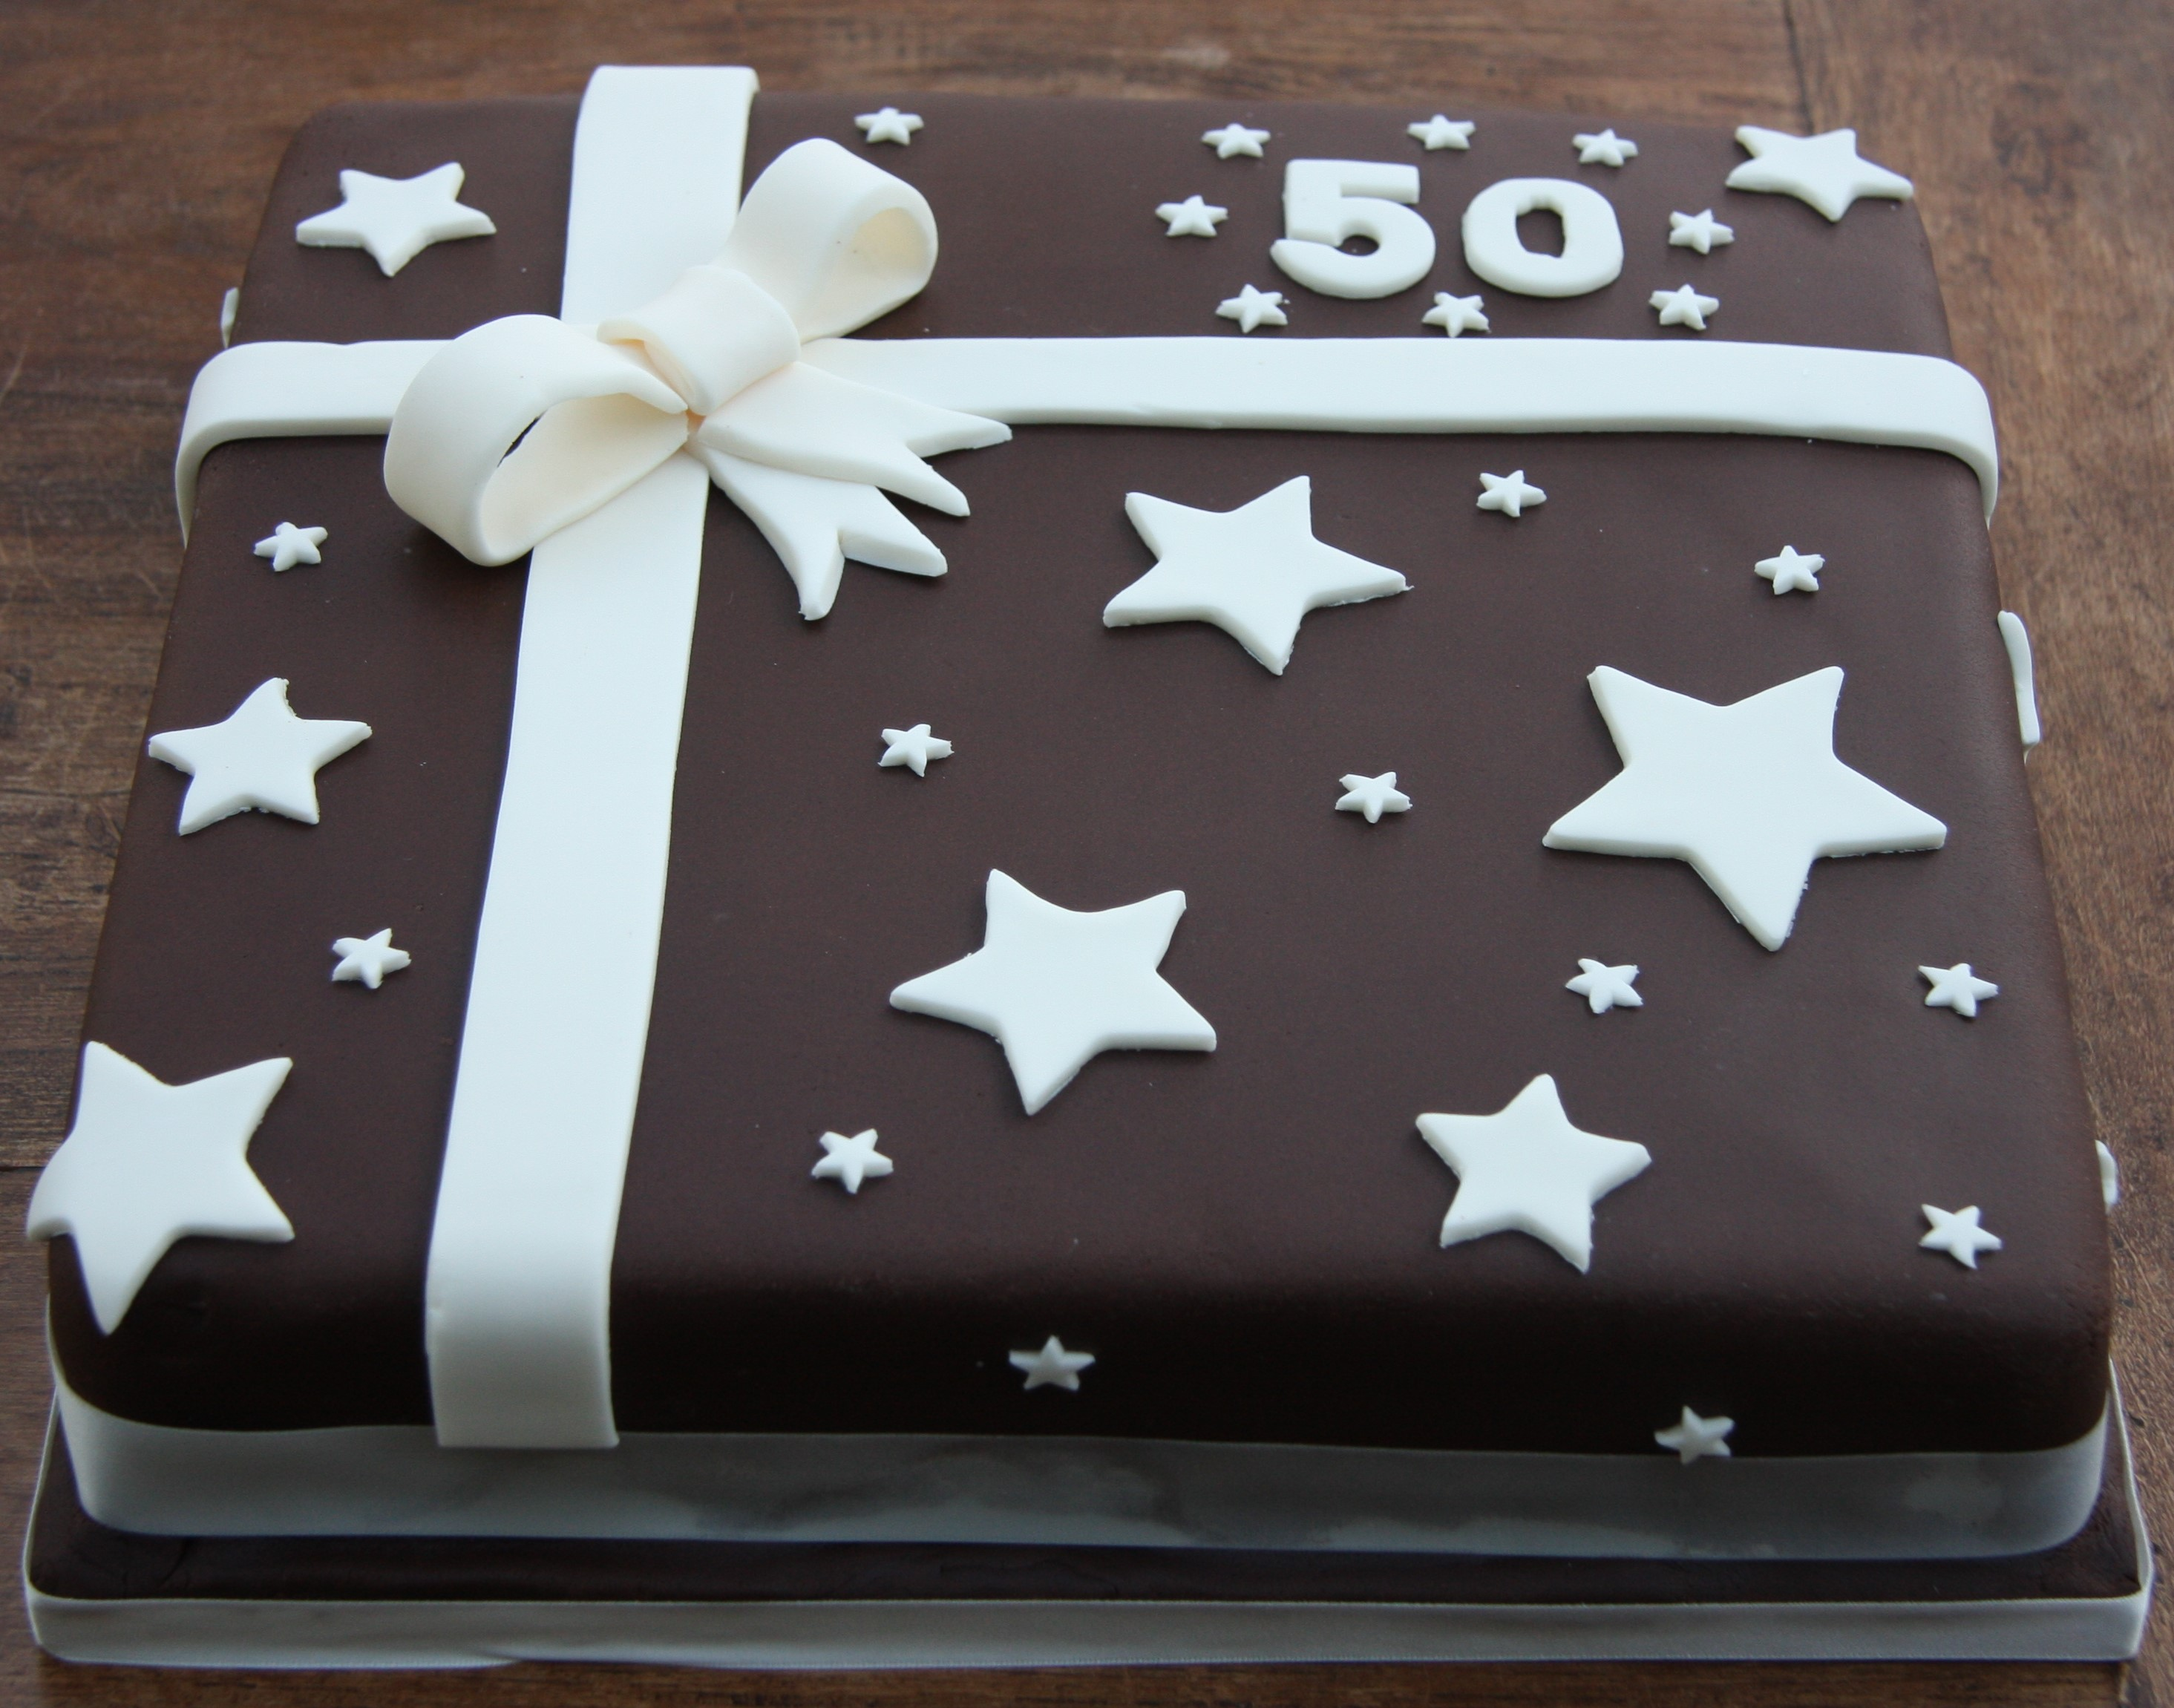 Fantastic Birthday Cake Designs For 50 Year Old Woman Archives The Cake Personalised Birthday Cards Veneteletsinfo